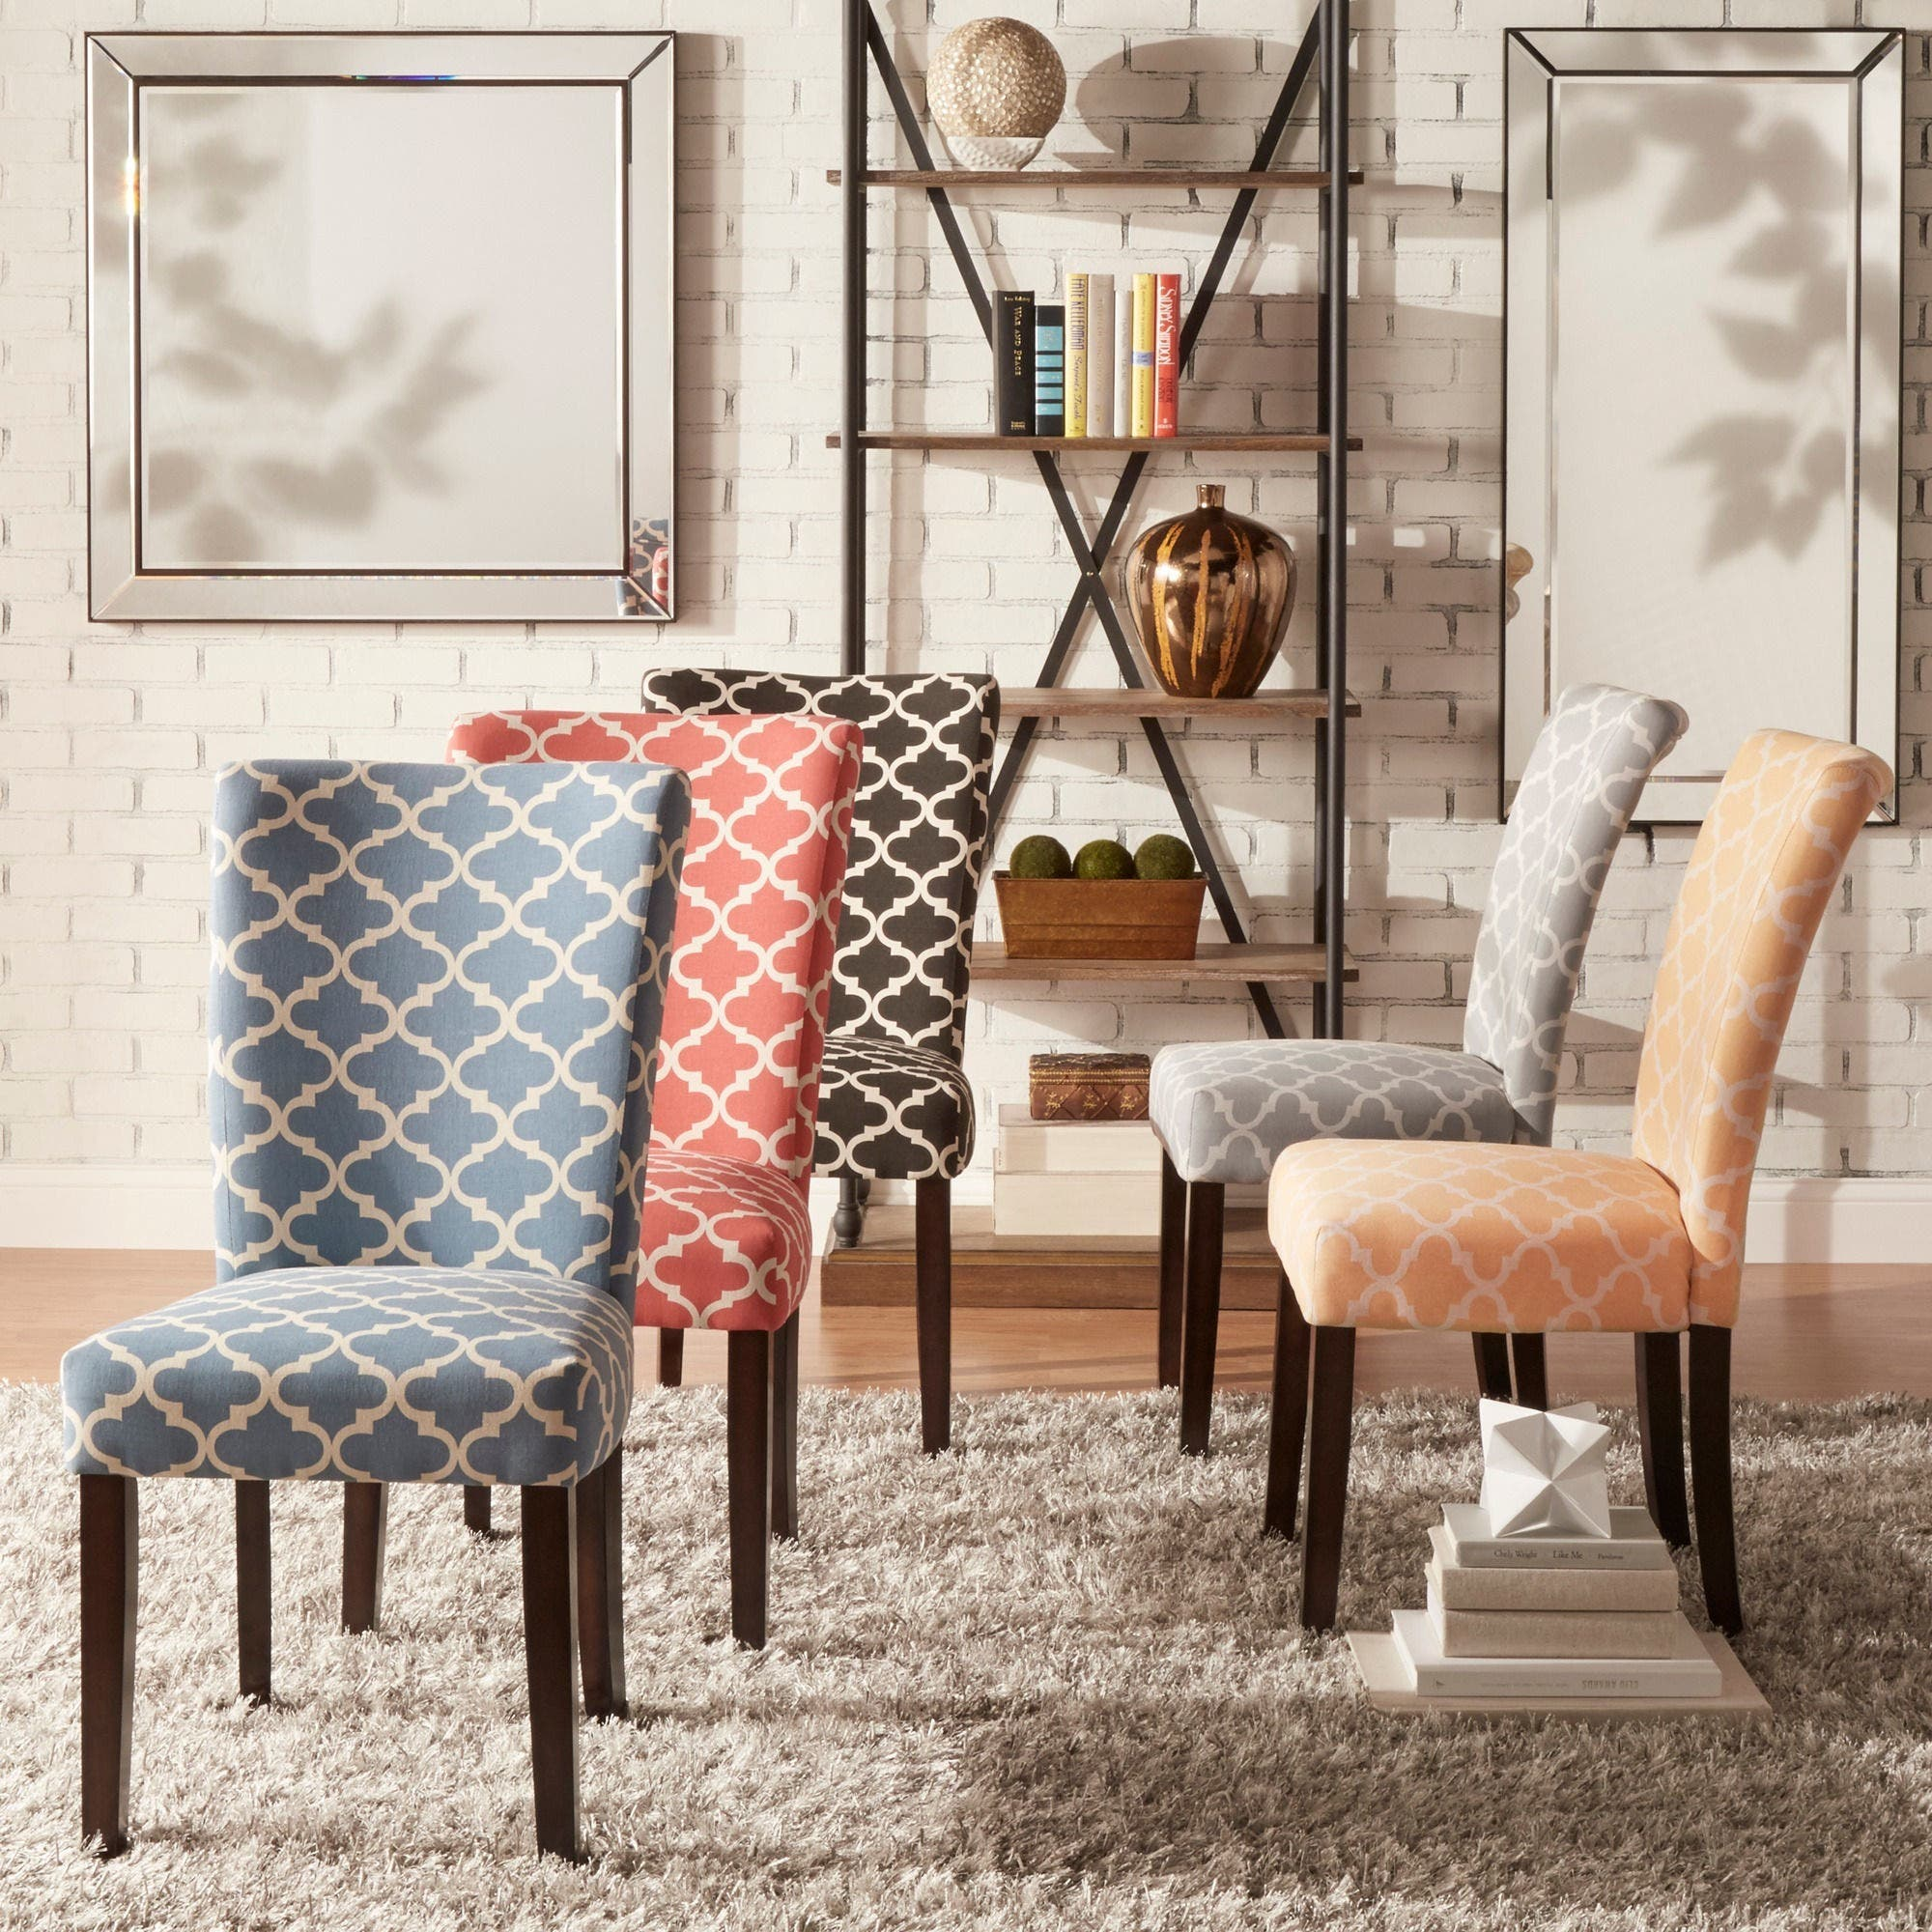 Best Deals On Dining Room Sets: Buy Kitchen & Dining Room Chairs Online At Overstock